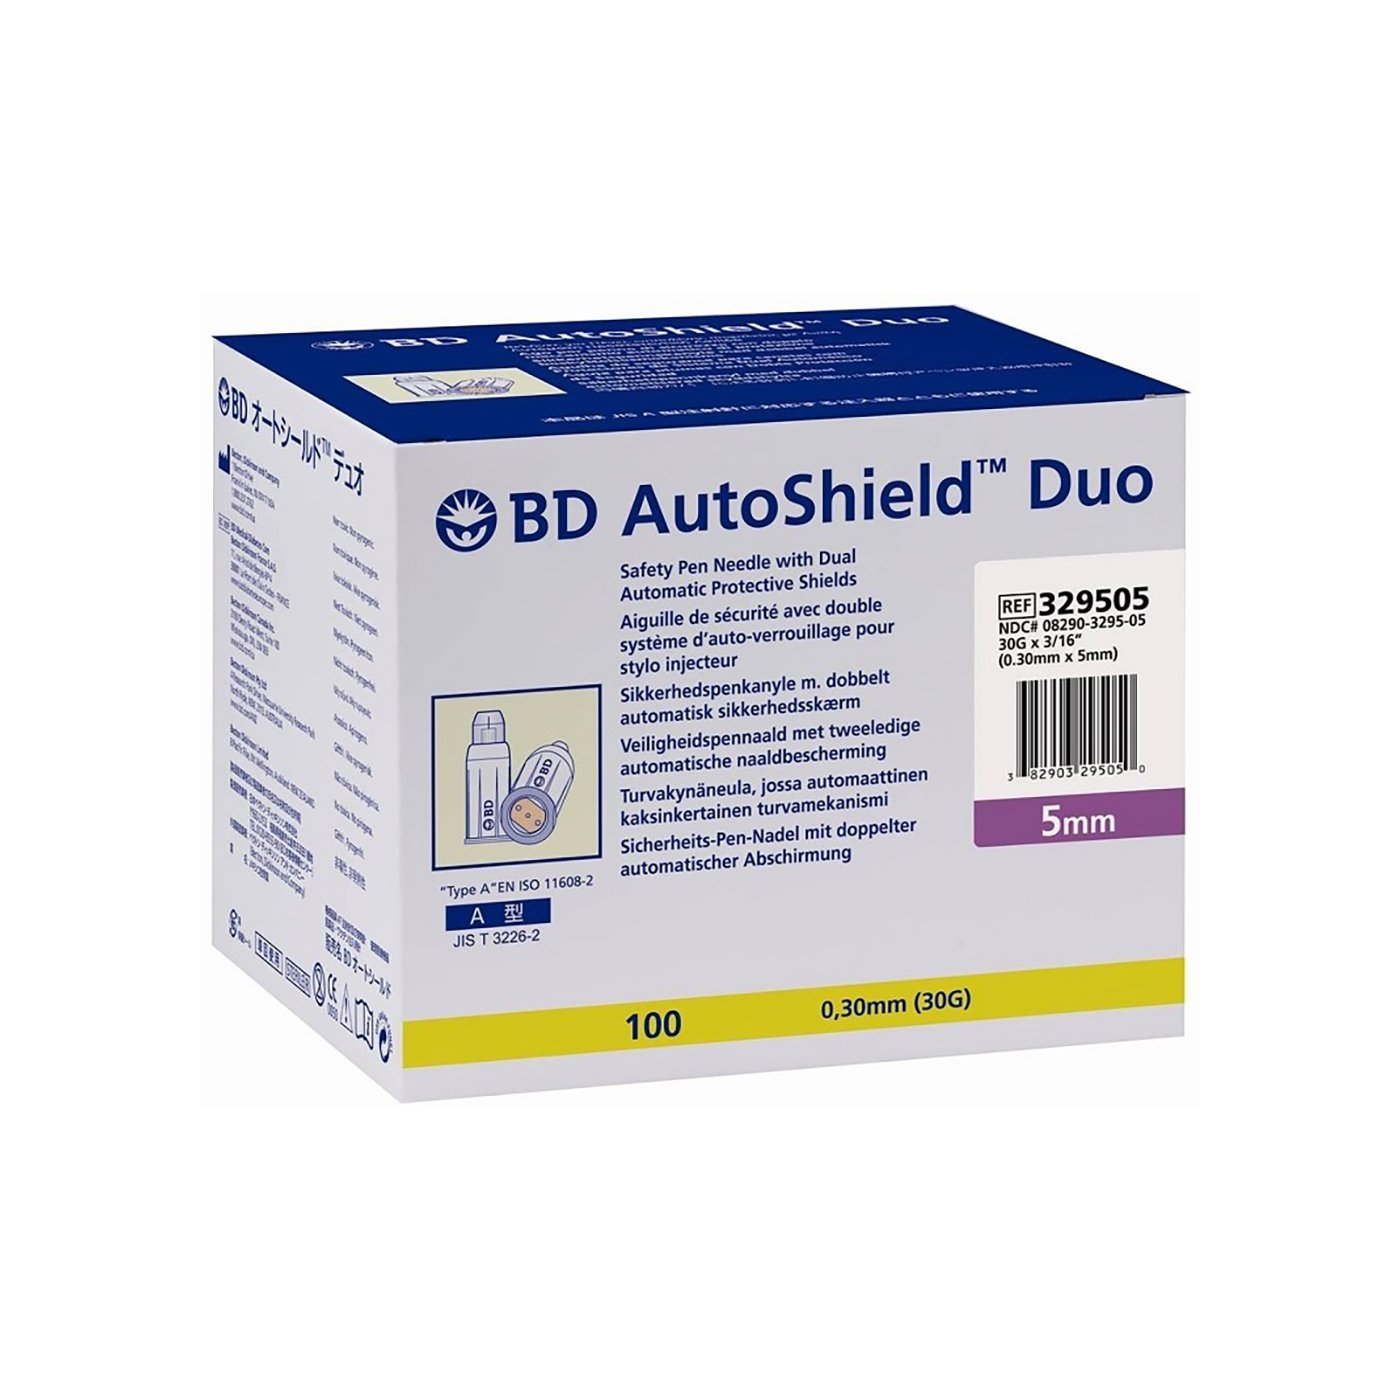 NEEDLE SAFETY PEN BD AUTOSHIELD DUO 30Gx5MM, BOX 100